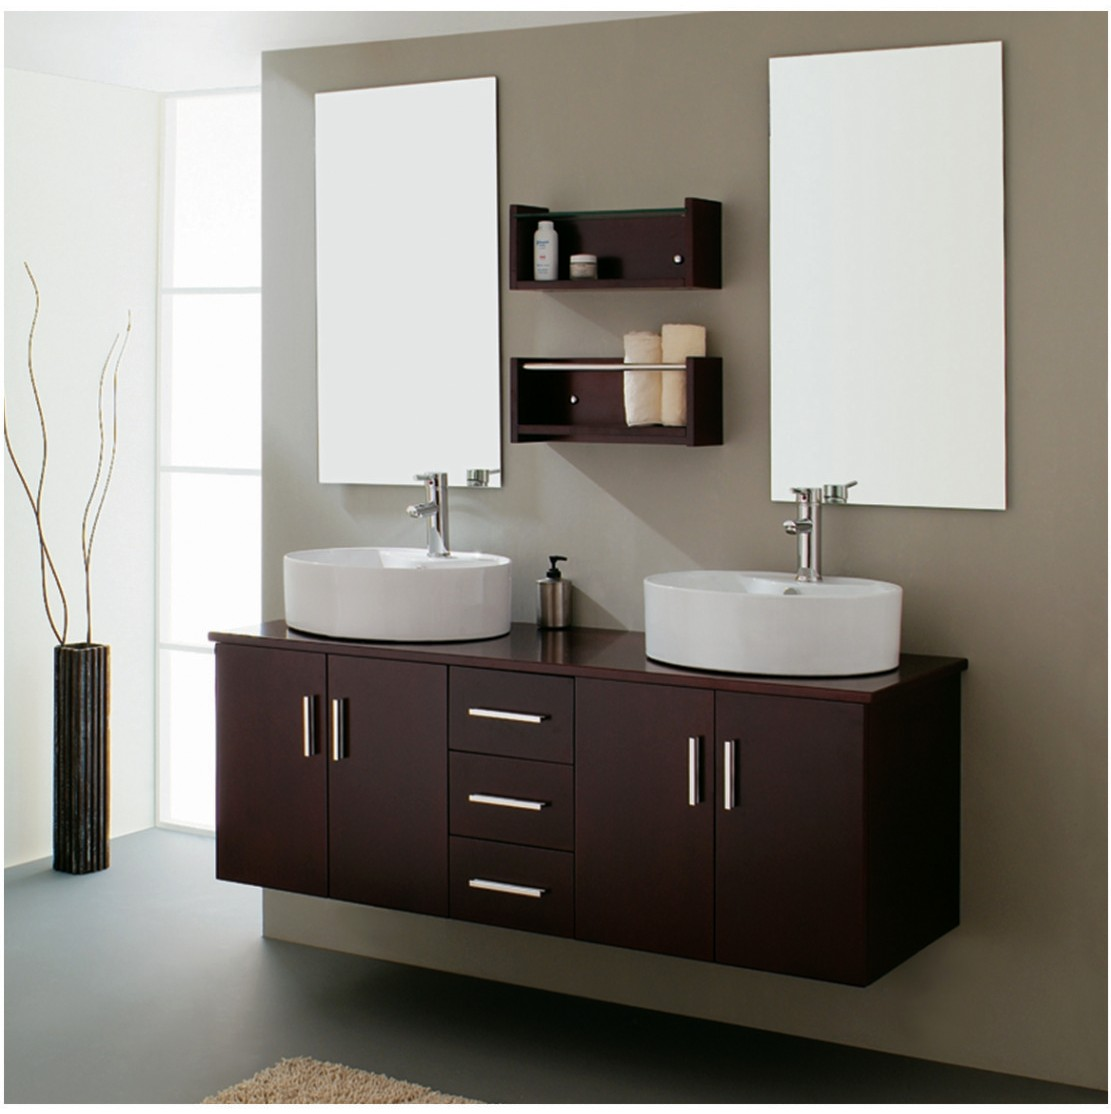 modern bathroom vanity milano iii modern bathroom vanity set bathroom vanity design ideas - Bathroom Cabinet Design